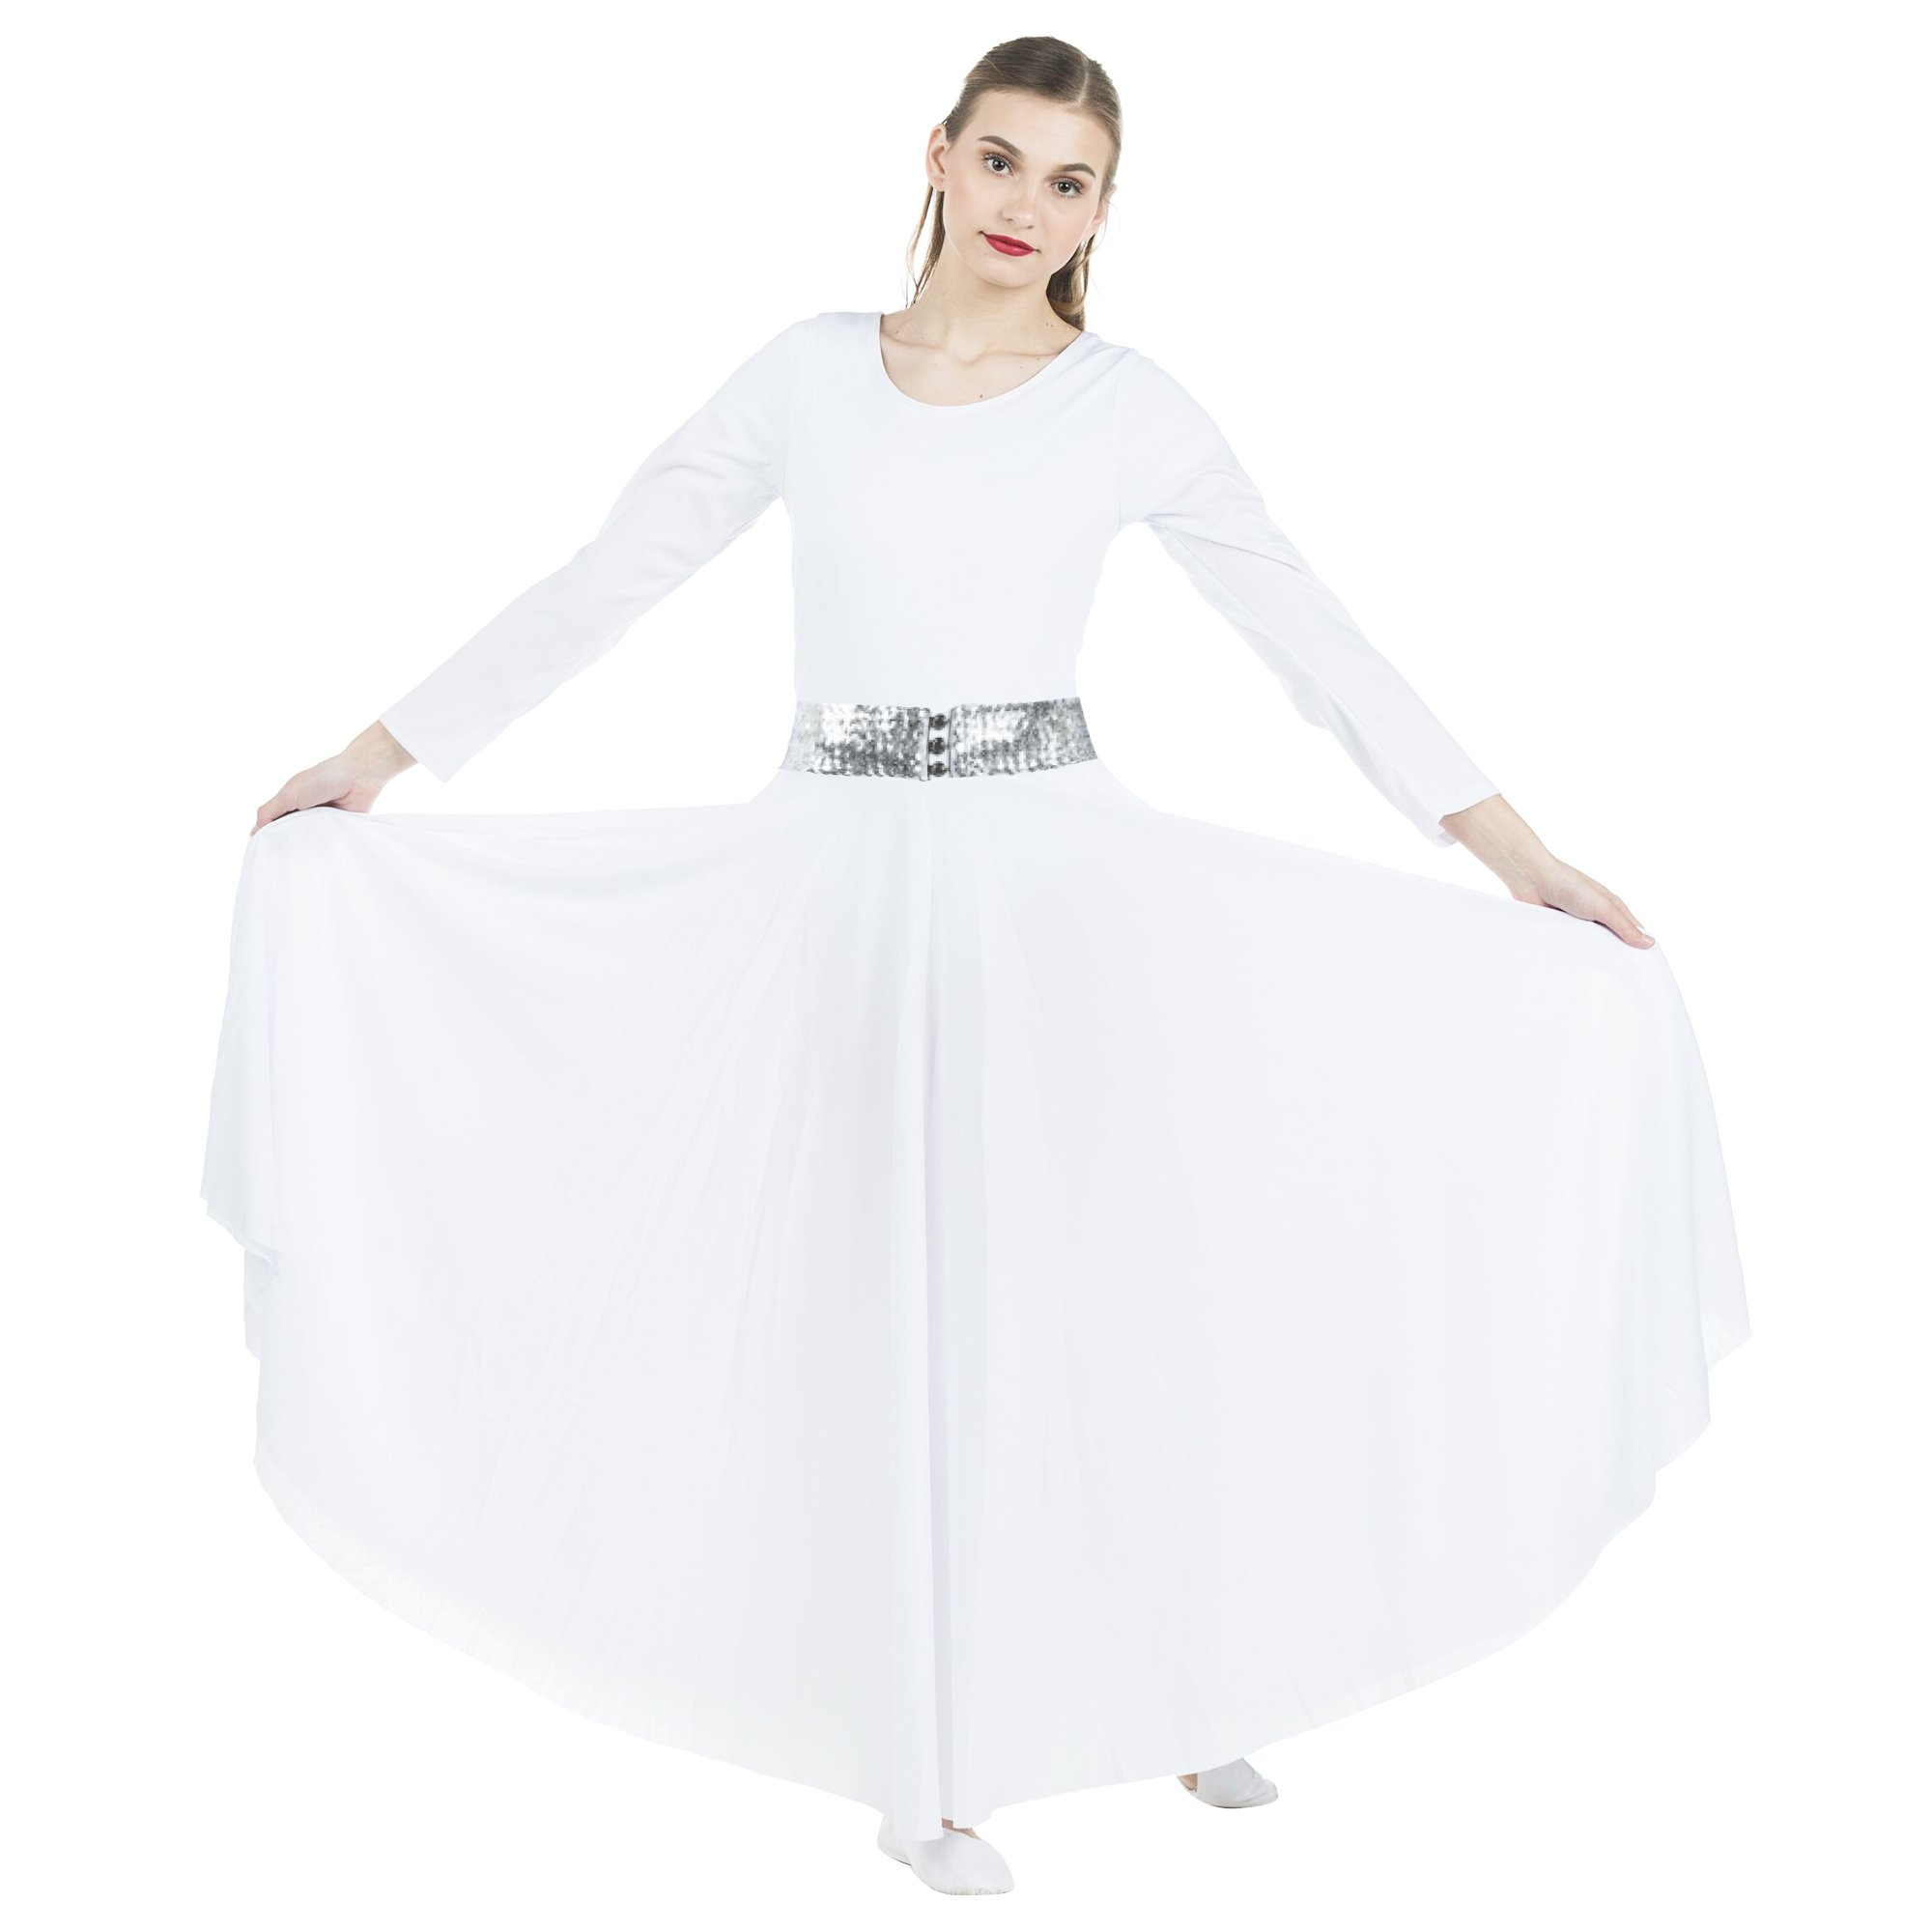 2-pc Set Danzcue Praise Full Length Long Sleeve Dance Dress with Sequin Elastic Belt